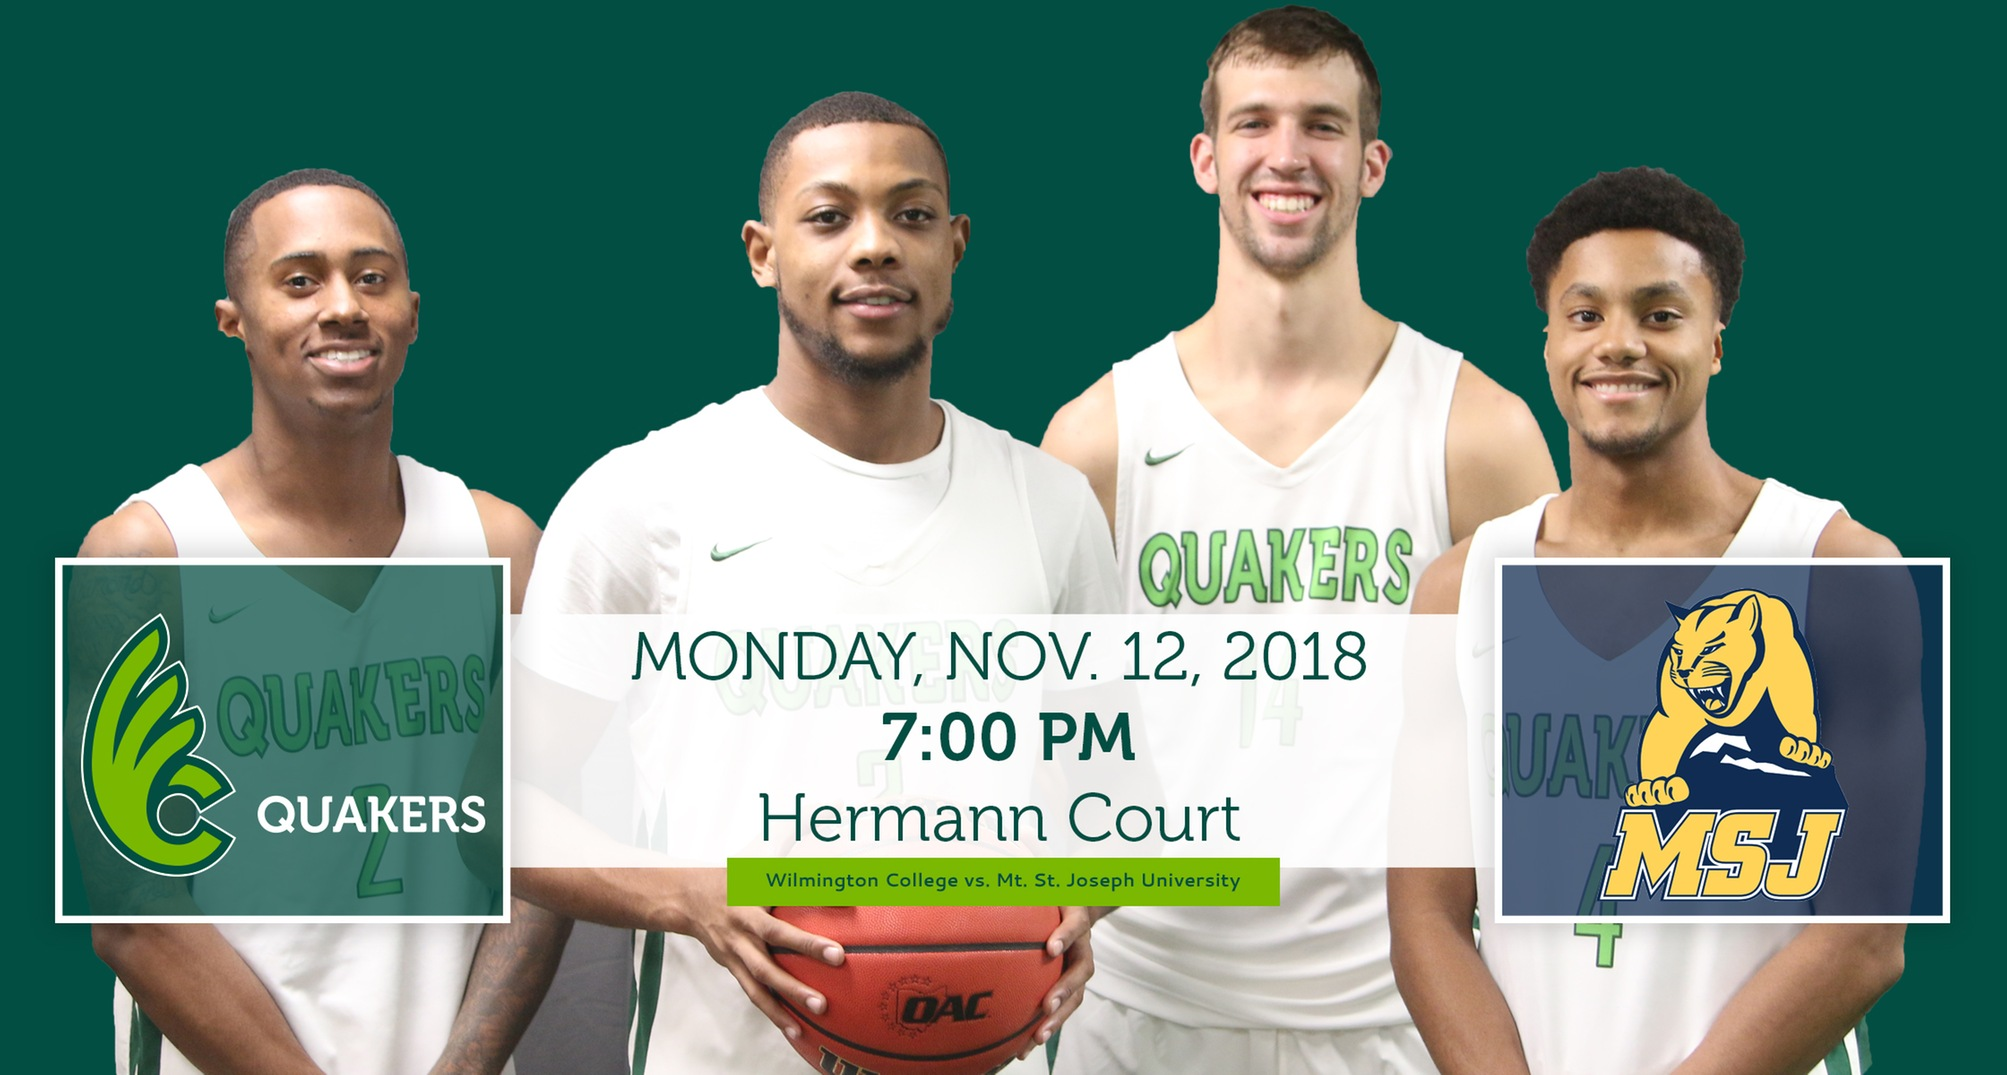 Men's Basketball Opens 2018-19 Season Versus Mount St. Joseph Monday